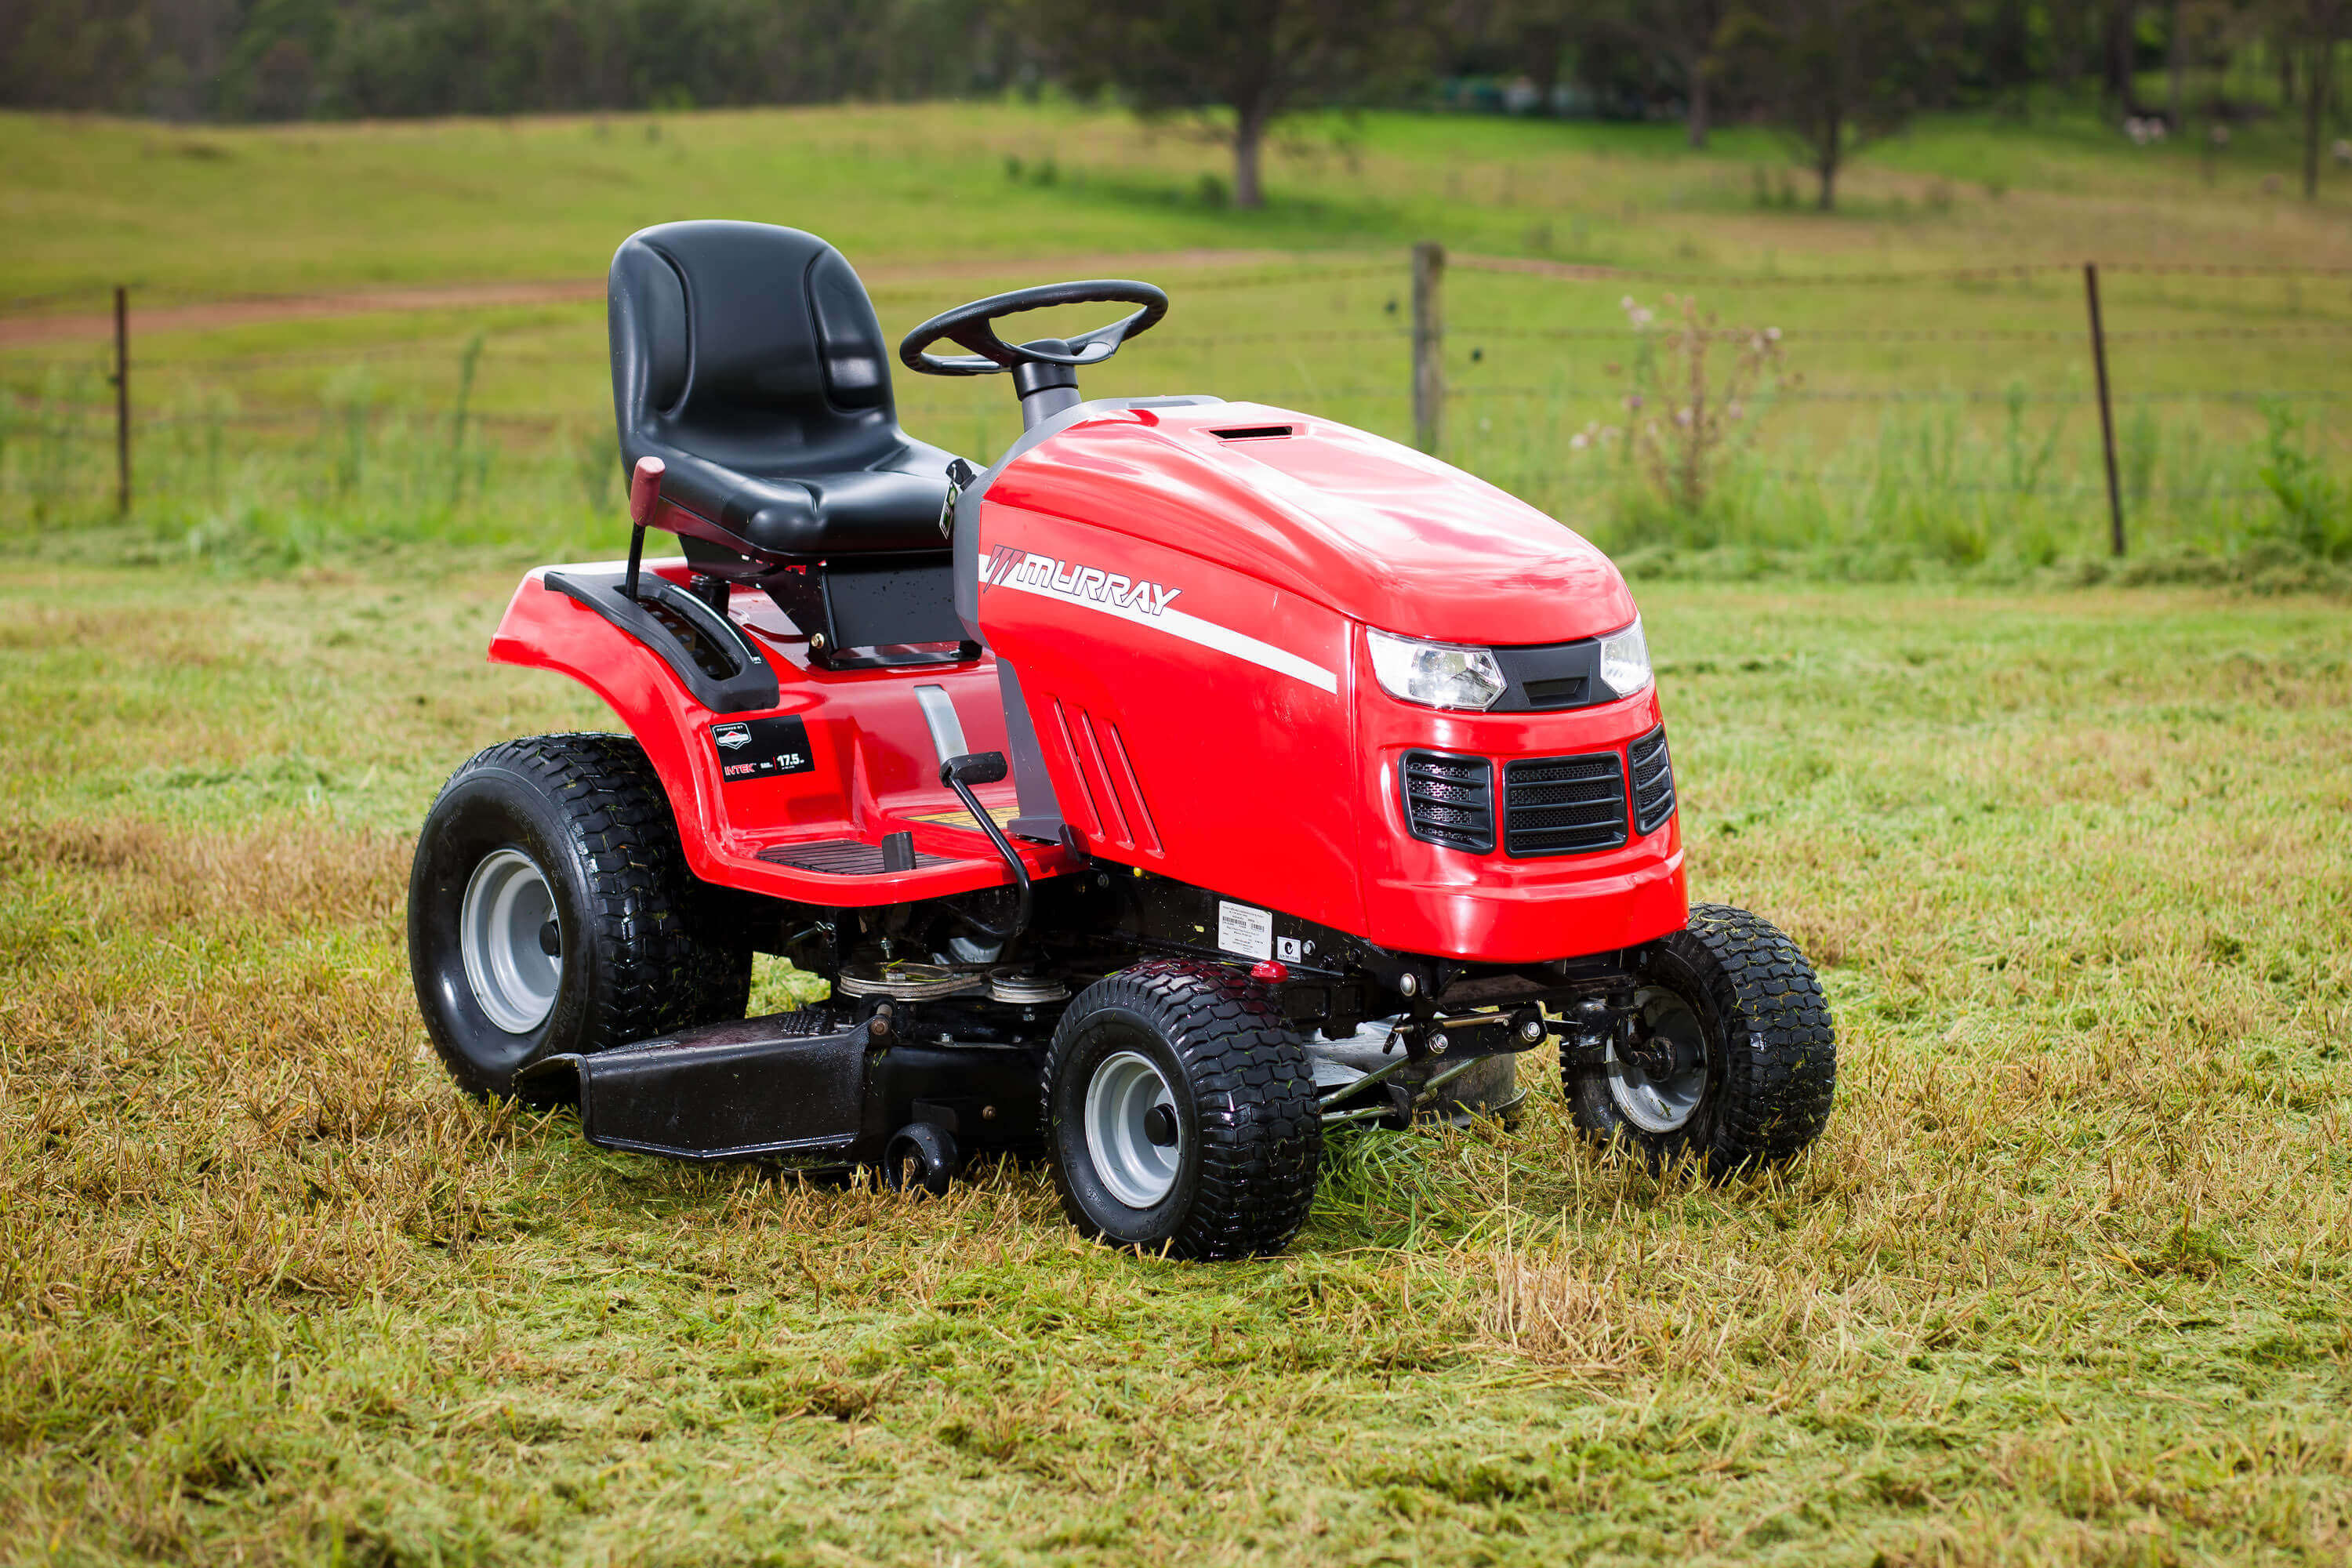 Piquant Our Online Form Or Call Murray Outdoor Power Equipment Australia Parklands Murrayproducts Available On Our Online Fill Our Experts Today Discuss Our Wide Selection Speak To One houzz-03 Murray Riding Mower